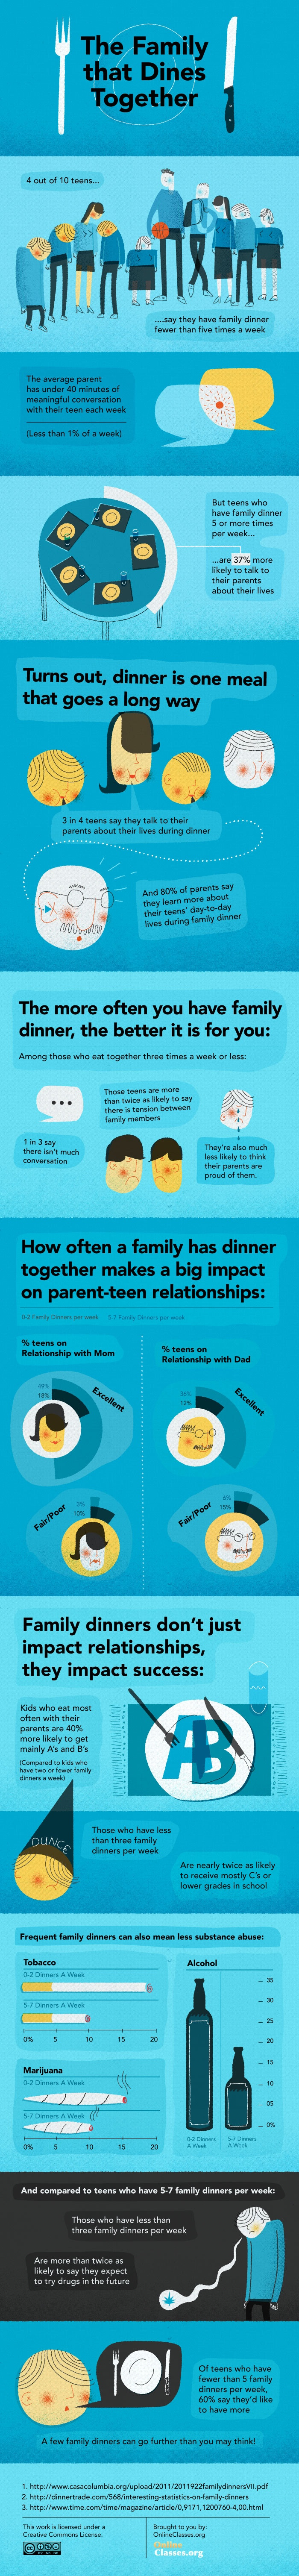 The Importance of Family Dinners Infographic